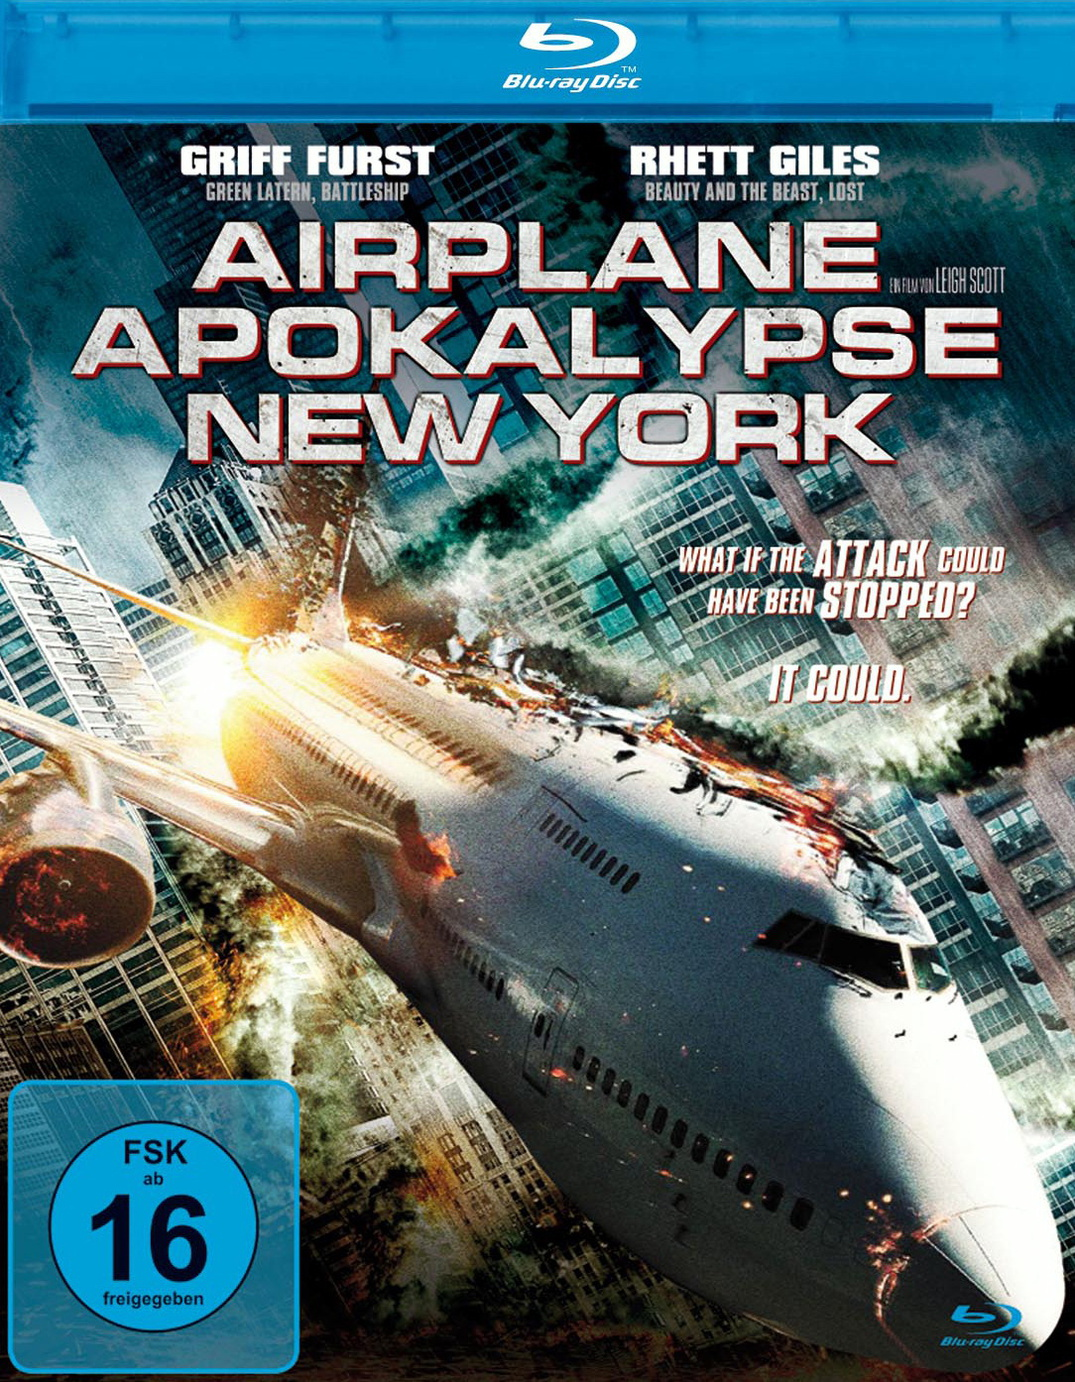 Airplane Apocalypse New York